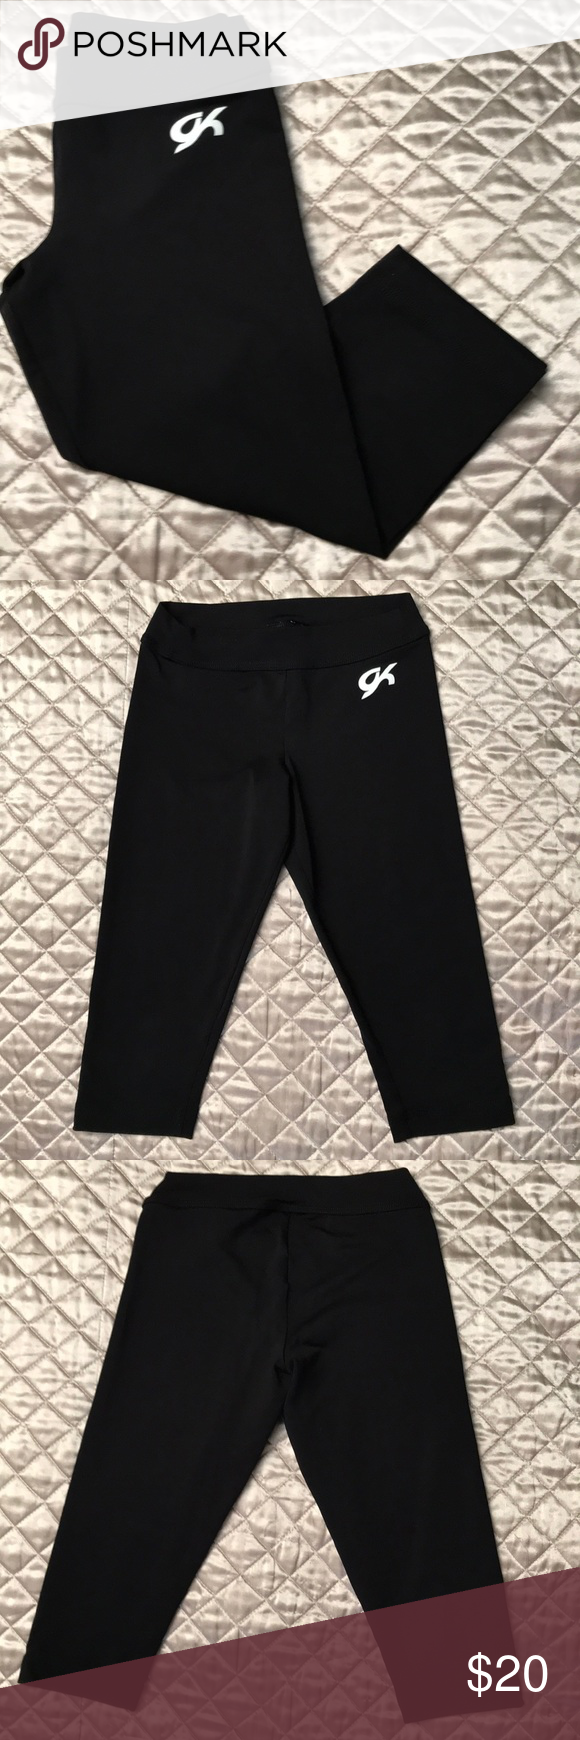 1a6edb9c8a8f9 NWOT GK ELITE CAPRI LEGGINGS SIZE CL BLACK GK is the best in Gymnastics  Apparel. Never used! Perfect condition. Child Large. GK Bottoms Leggings